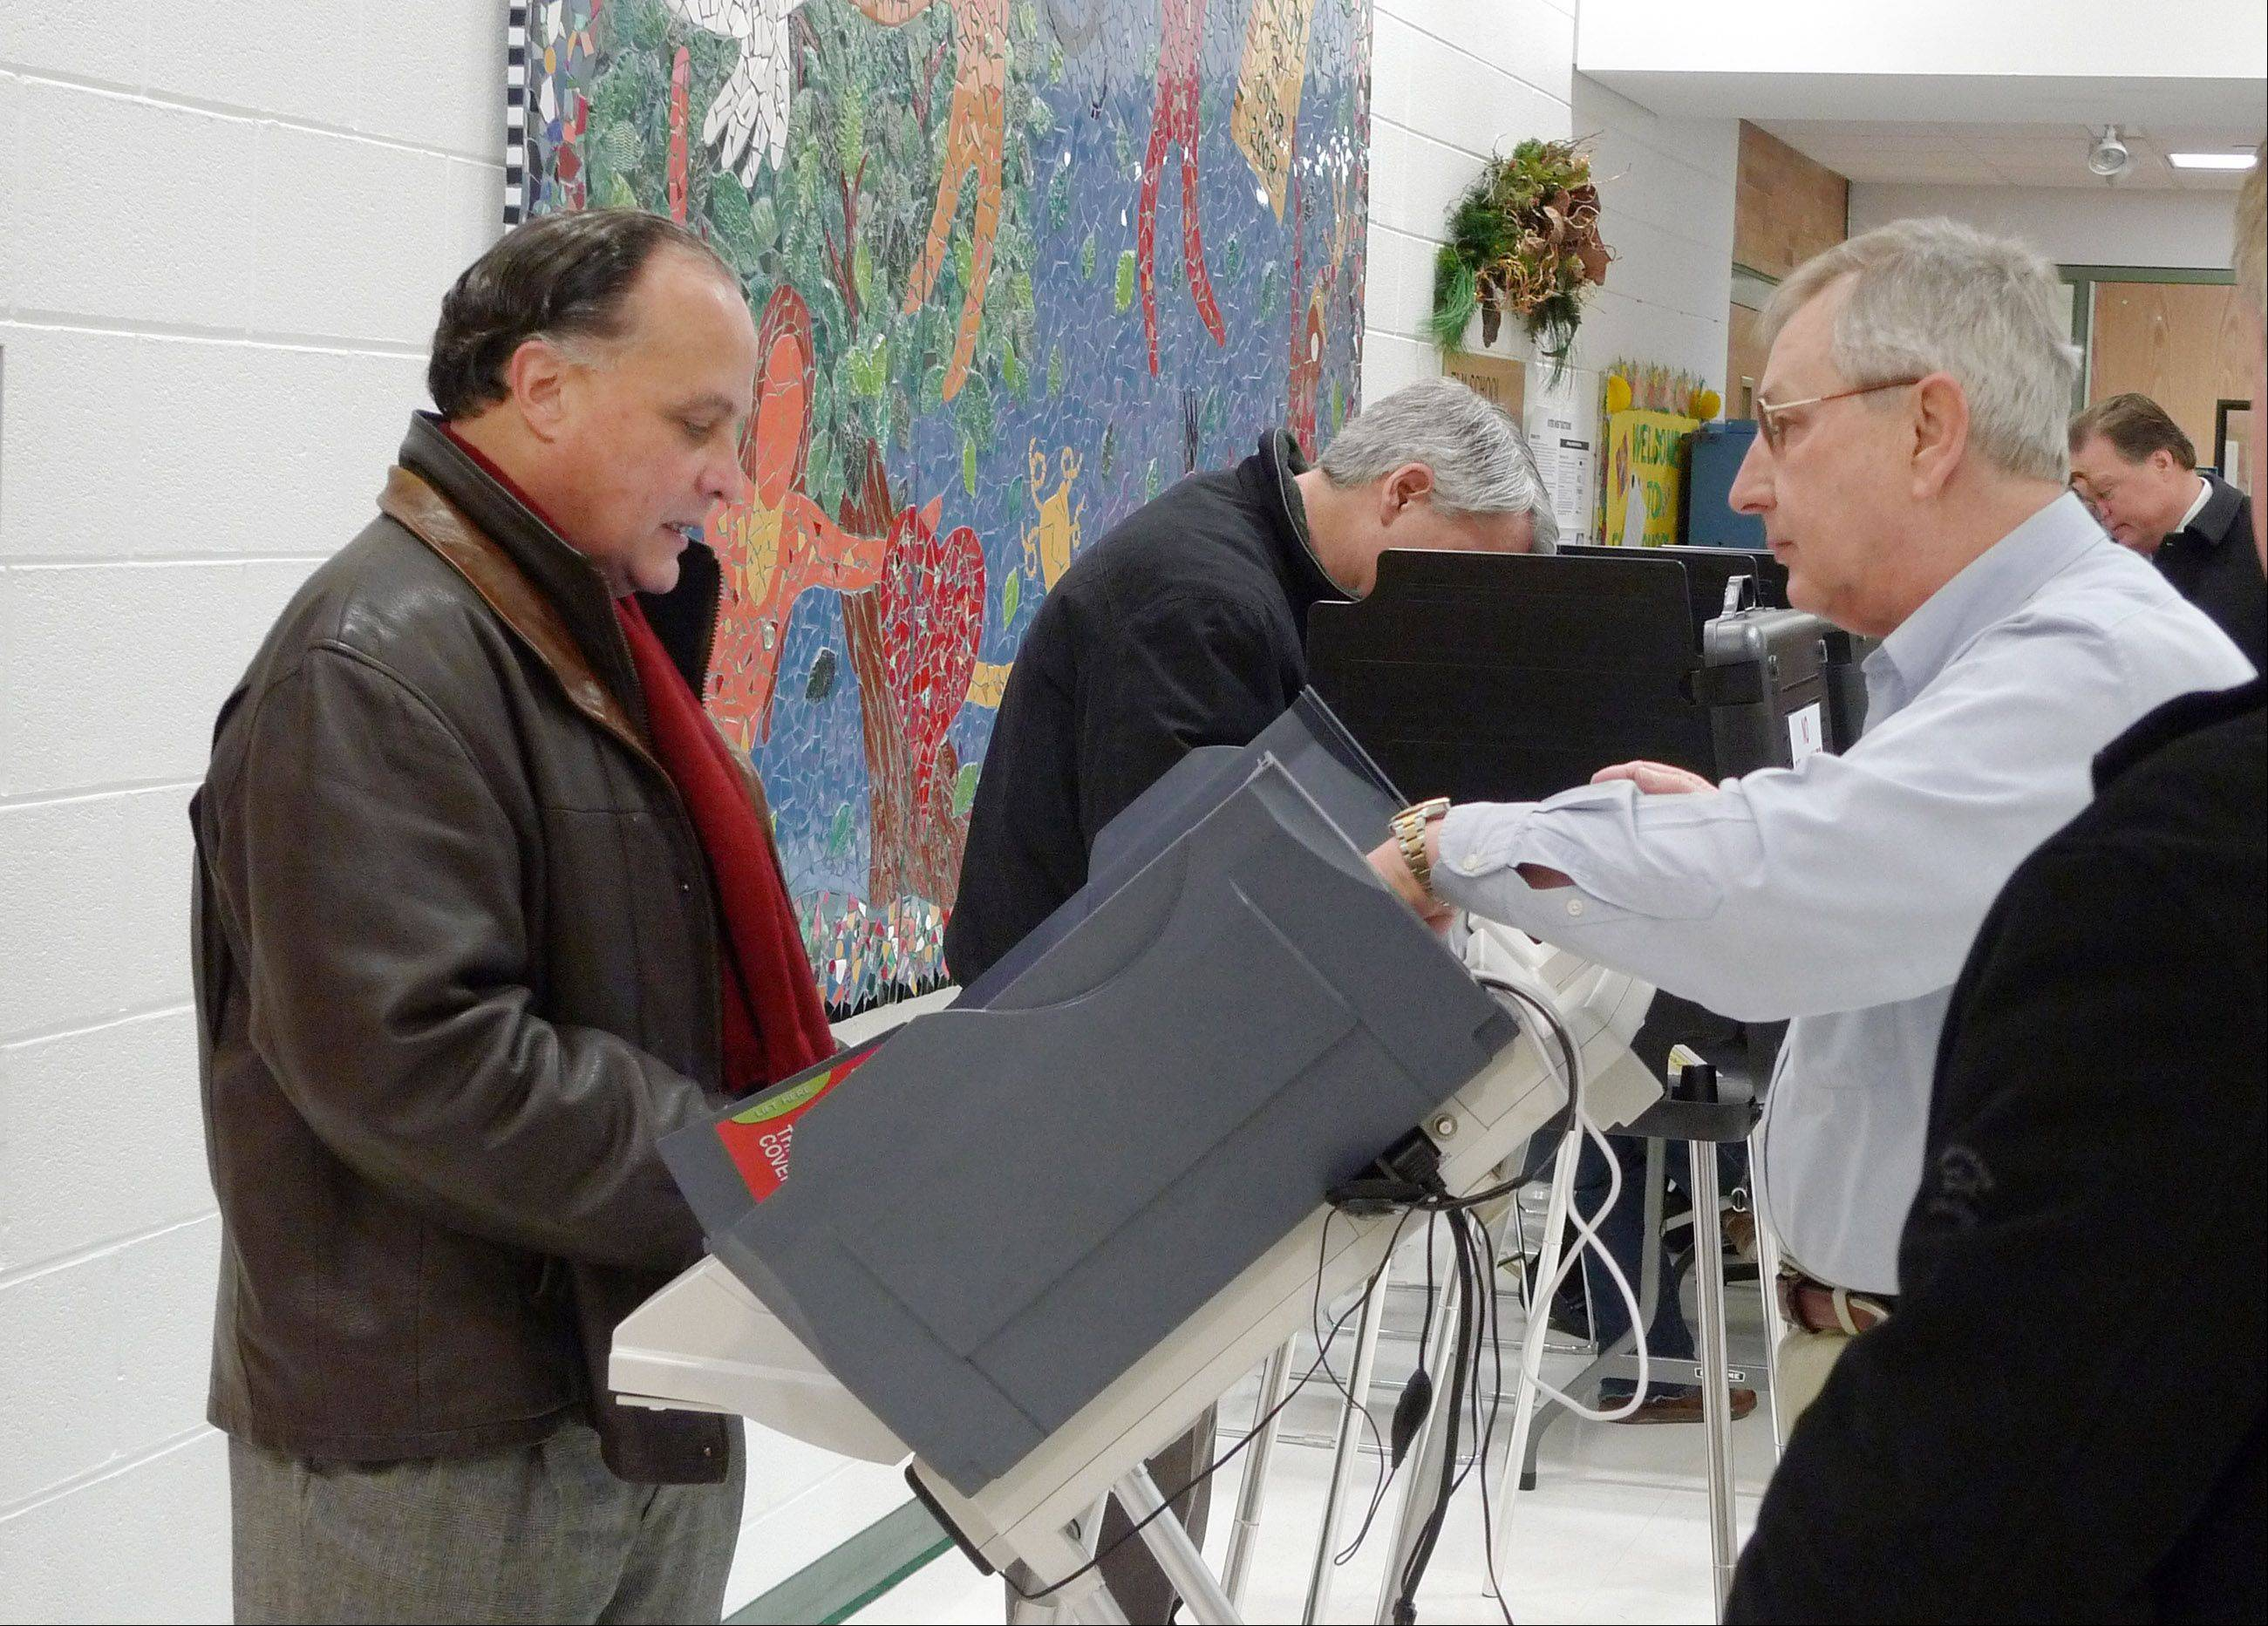 Gary Grasso, left, gets instructions on the workings of the polling place's single electronic voting machine from election judge John Michalski, right. during the 2010 election.